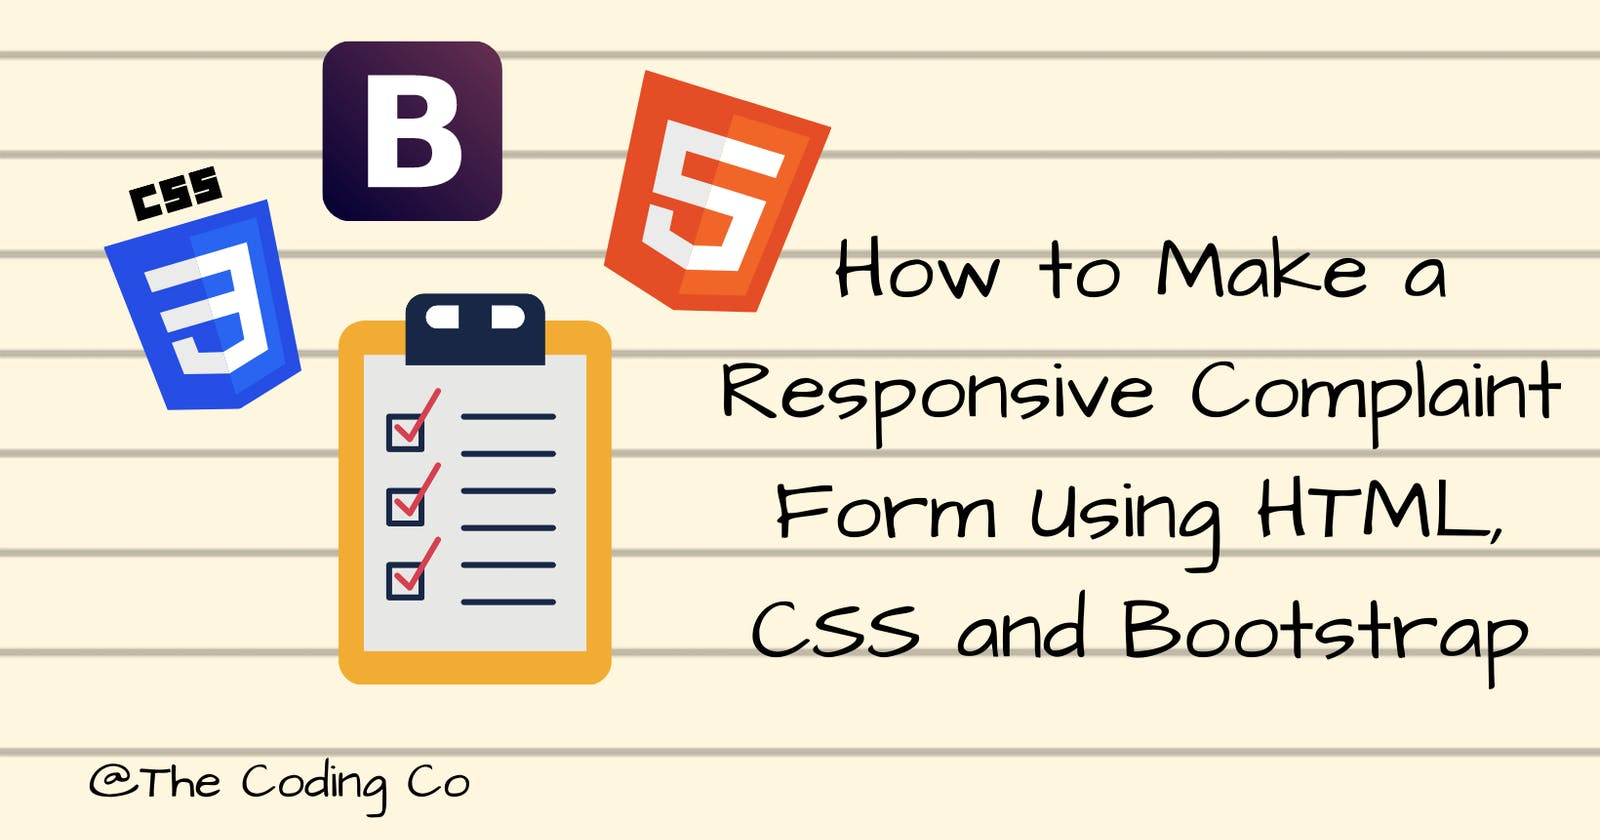 How To Make A Responsive Complaint Form Using HTML, CSS, and Bootstrap